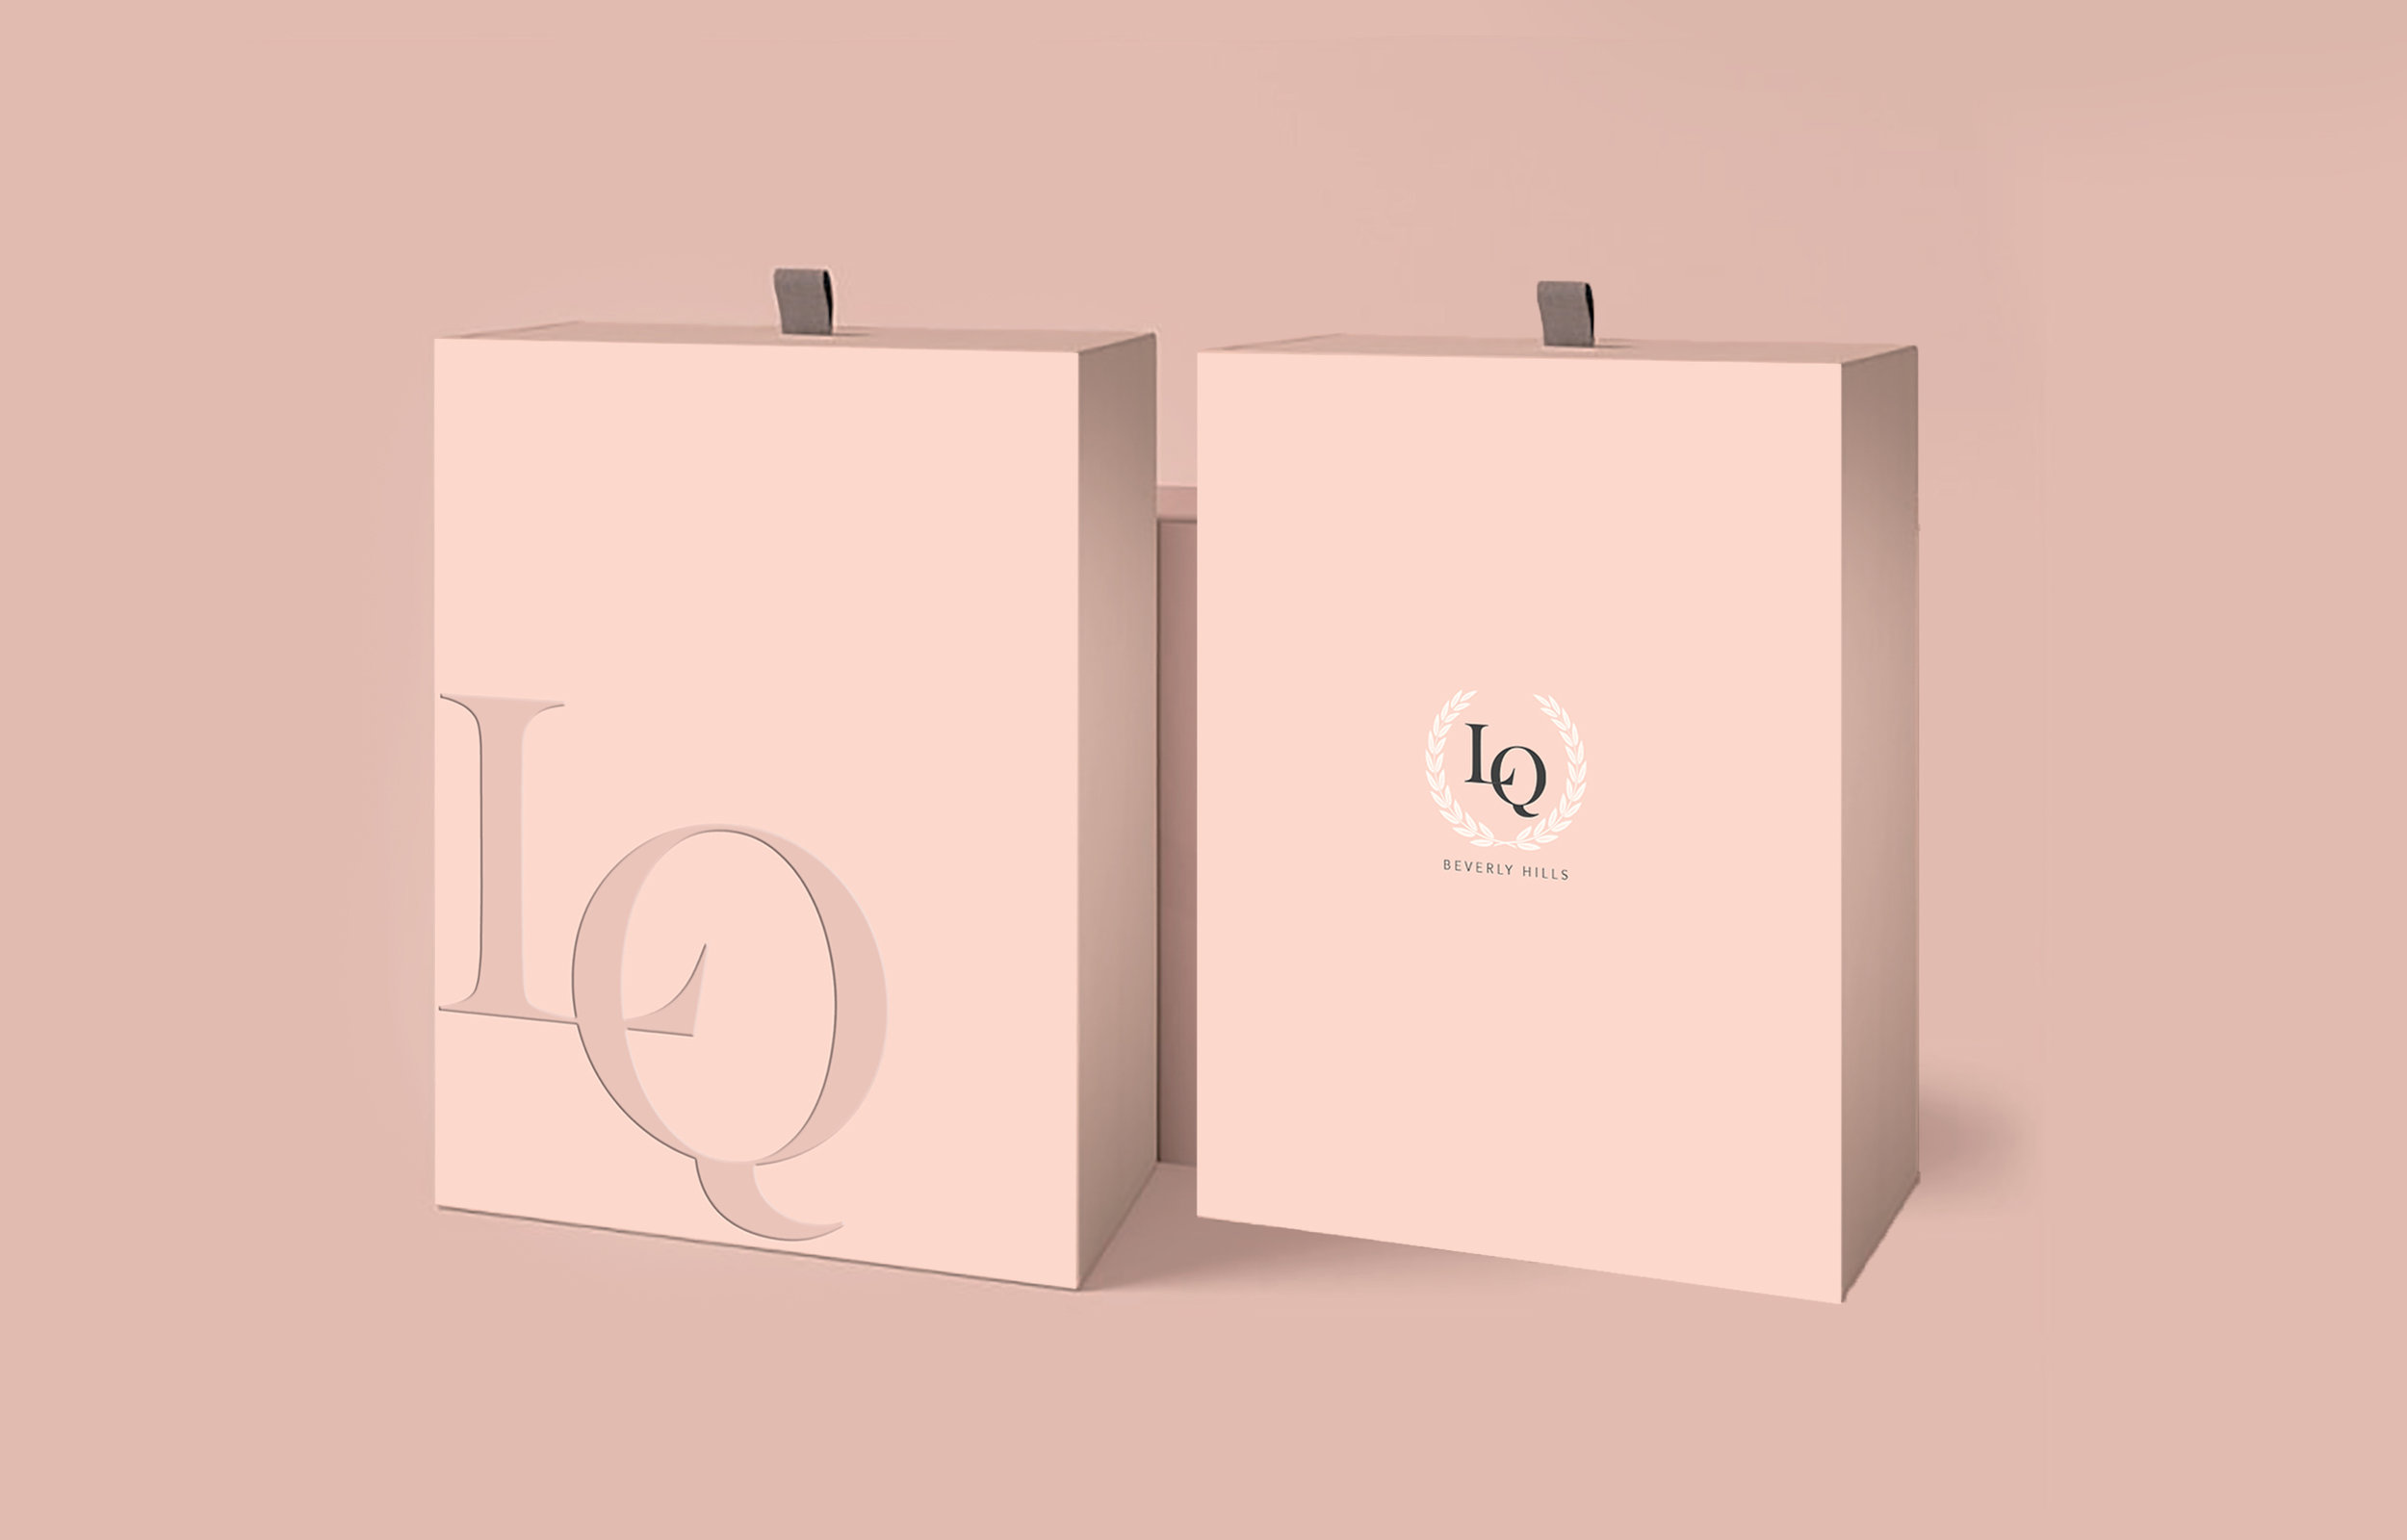 Logo and packaging design mock up for LQ Beverly Hills. 2019.